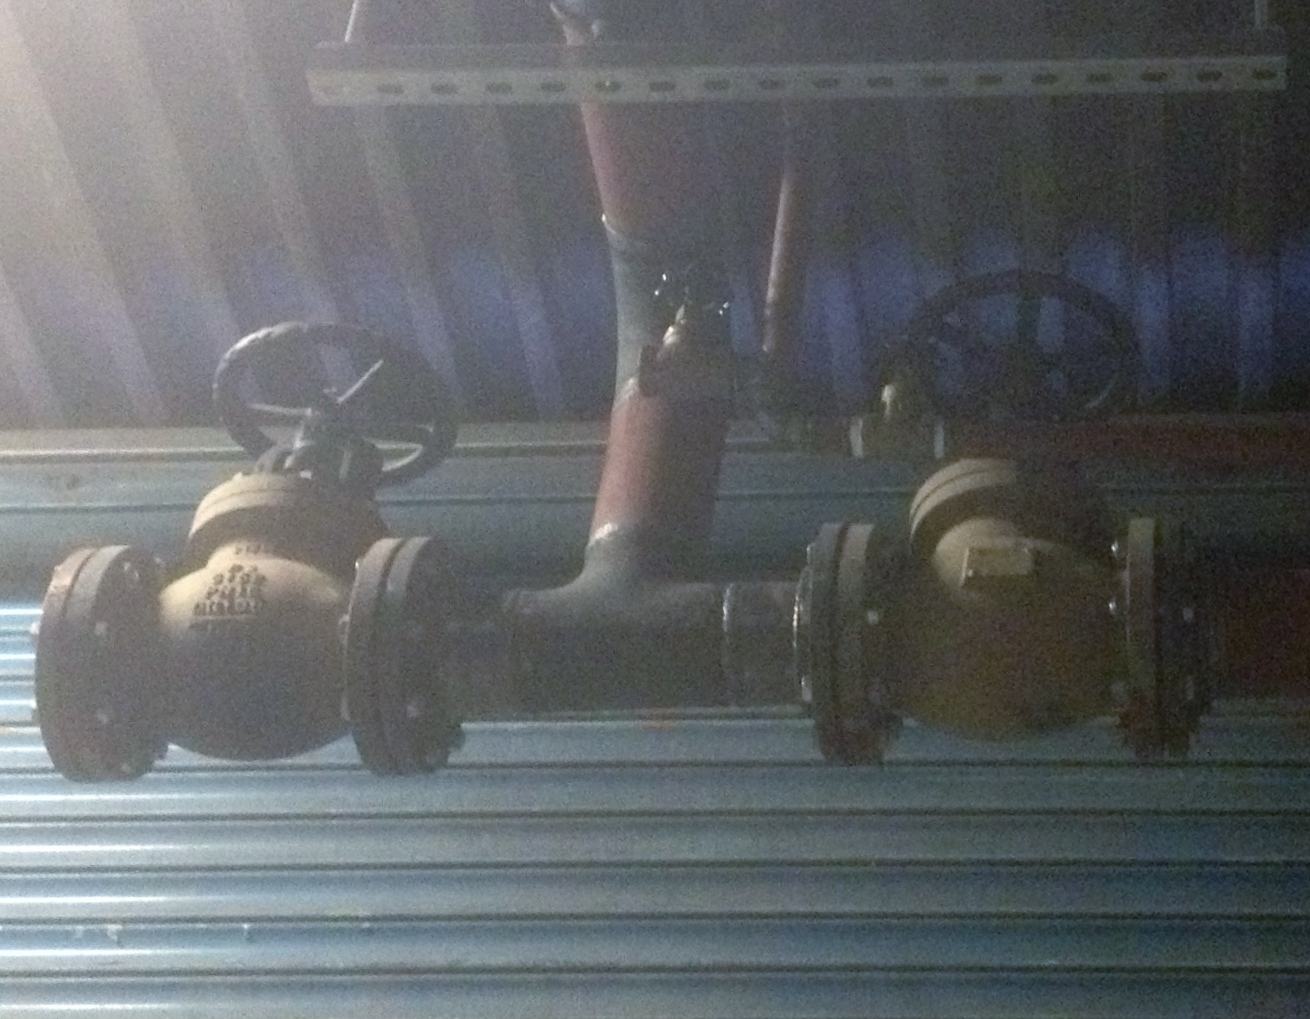 Water Hammer Prevention in Process Steam Systems | Besseges VTF